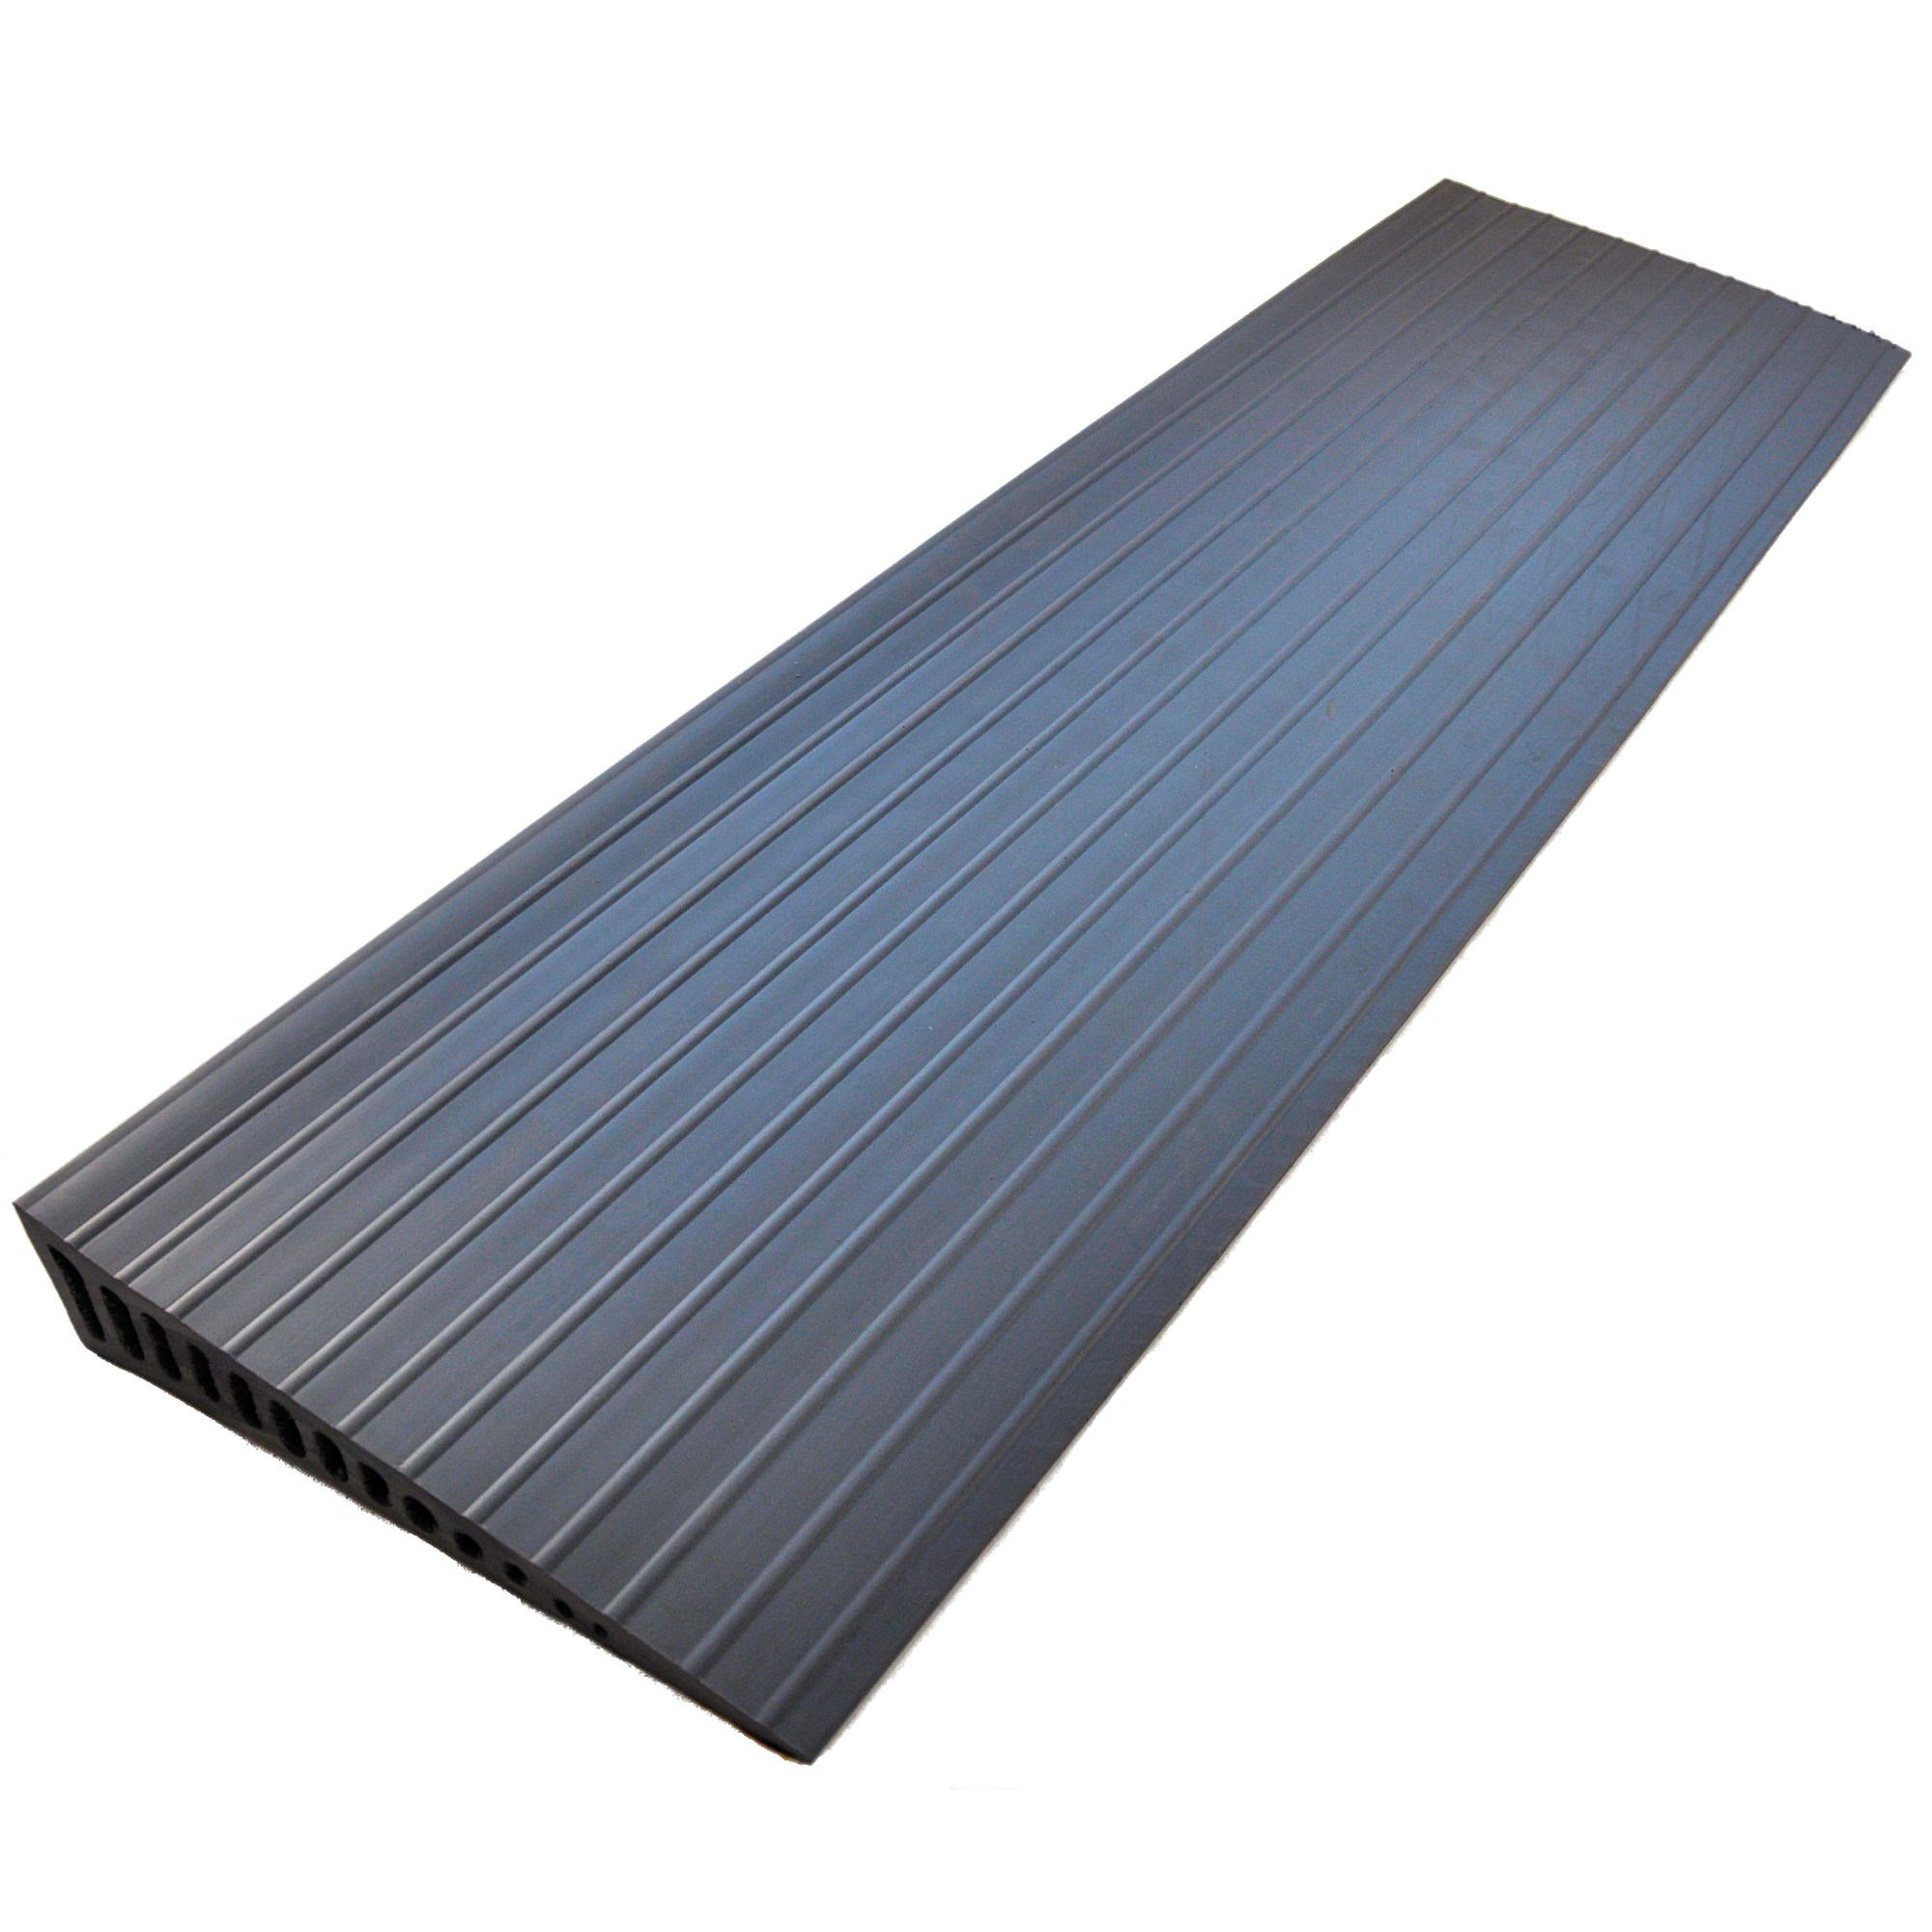 Grey Rubber Door Wedge Ramp Access Ramps From Mobility